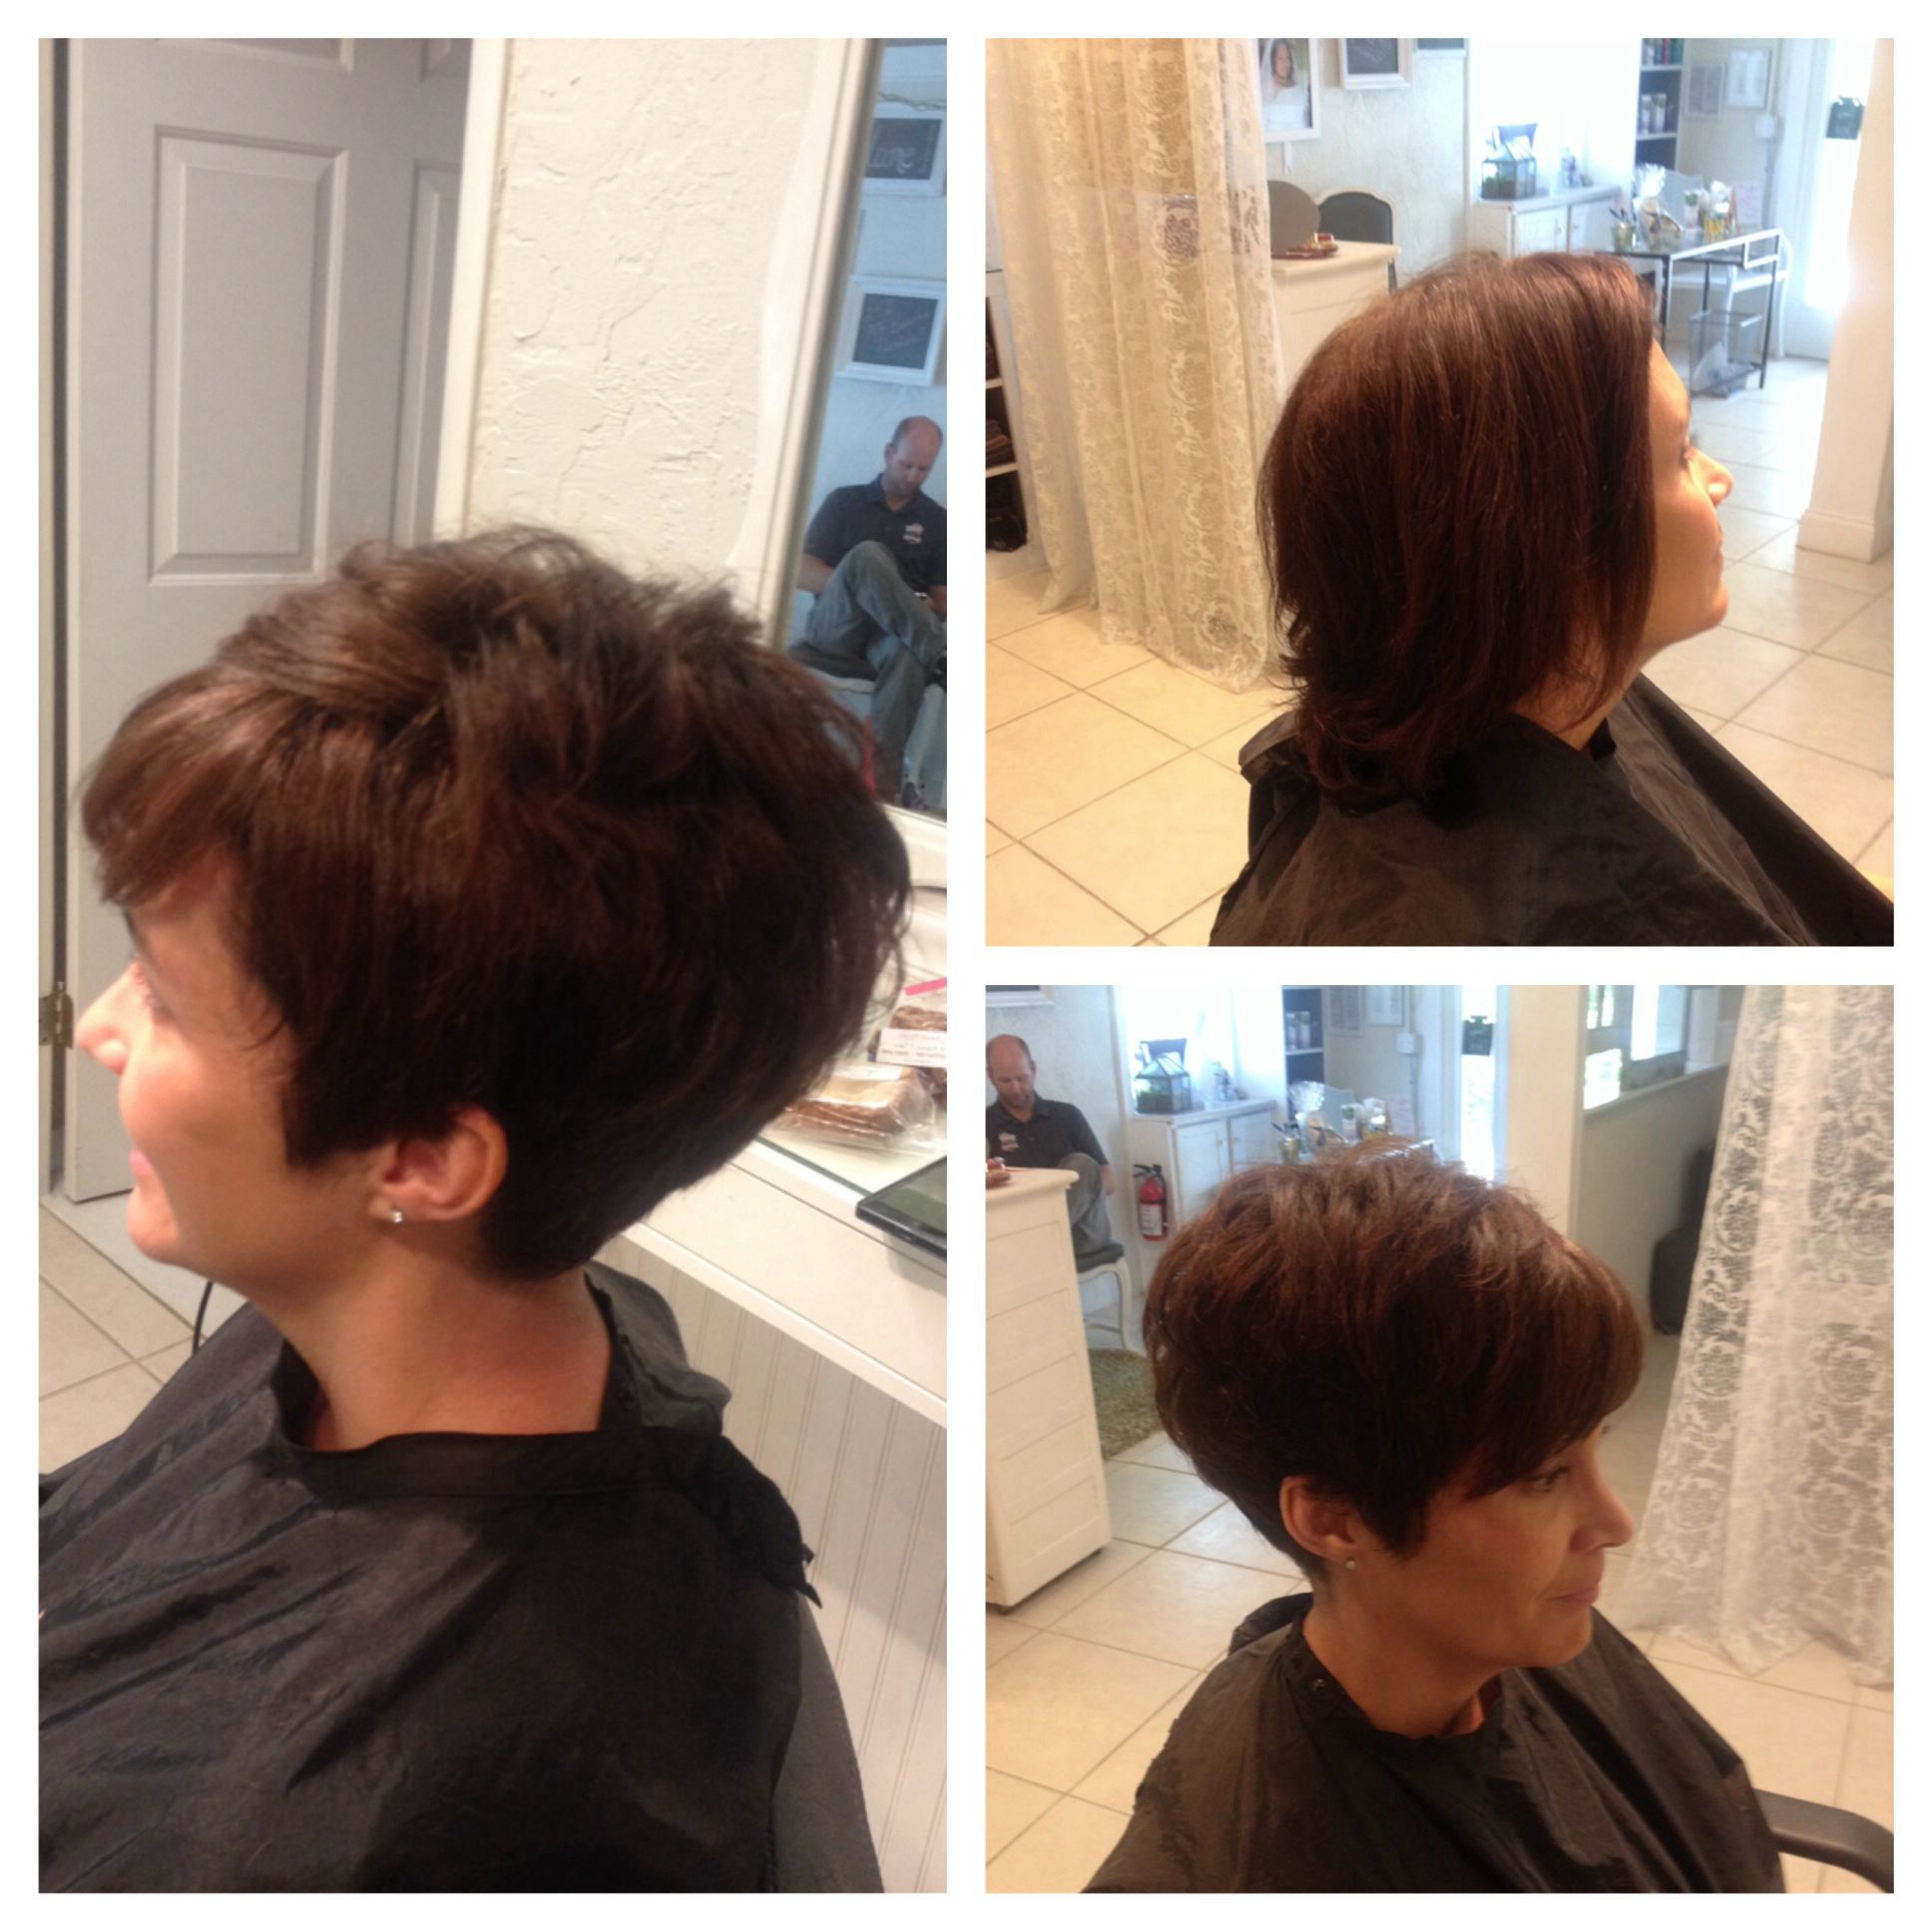 Cute Short Hair Make Overperfect Cut For Thick, Coarse Hair Within Sassy Short Haircuts For Thick Hair (View 19 of 25)